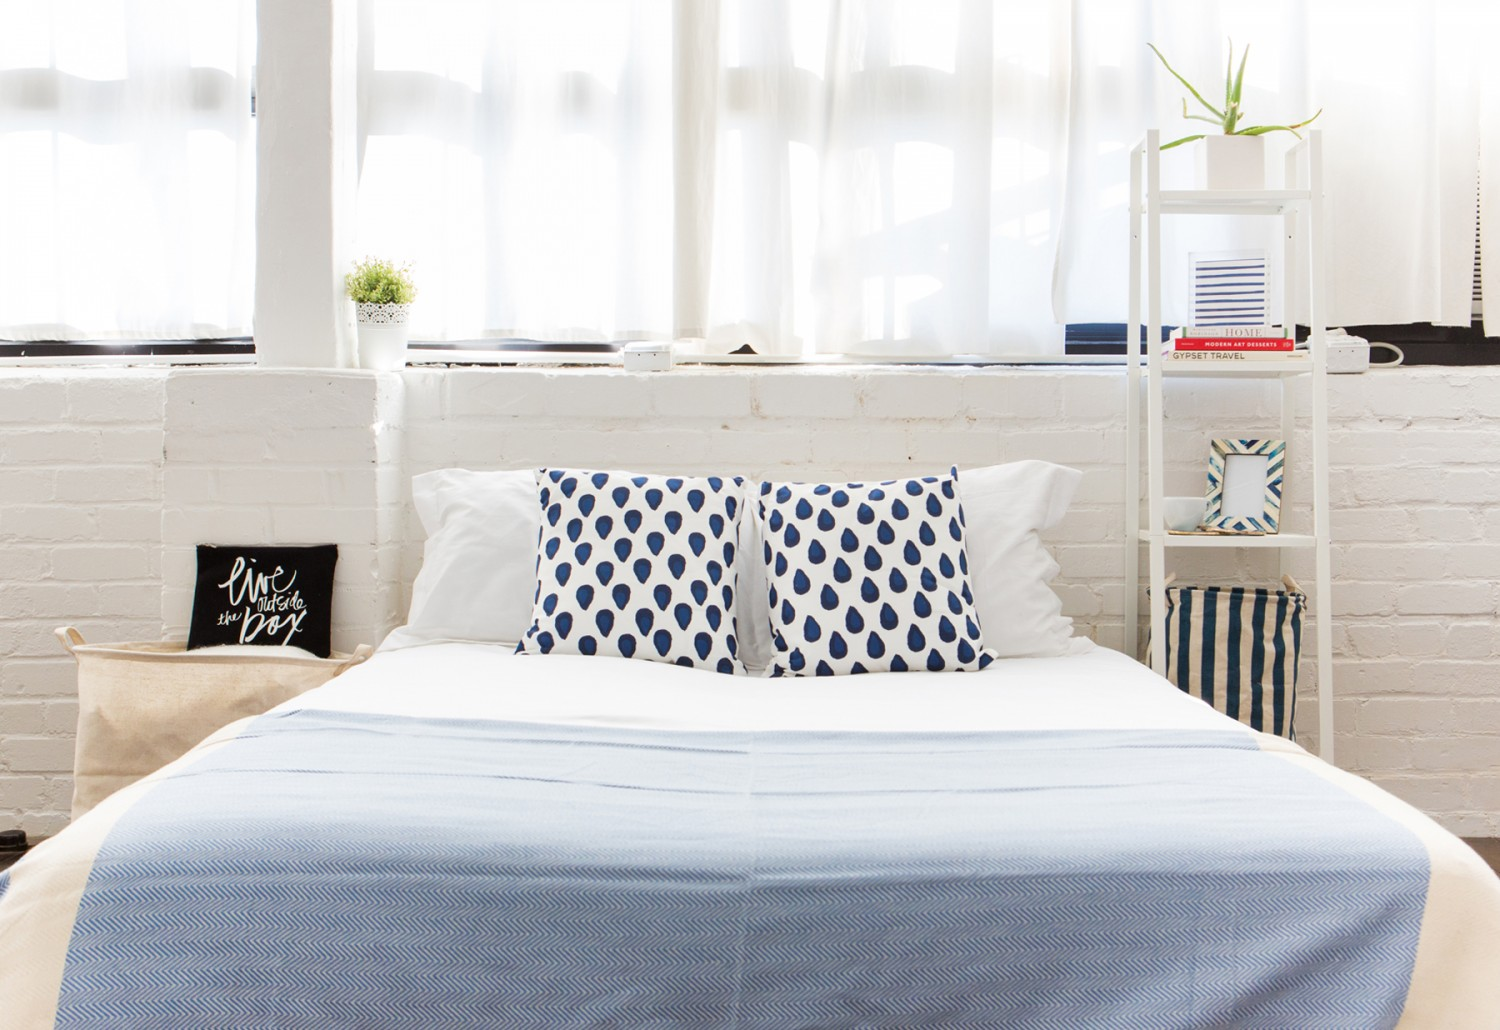 Home Decorating Ideas: Remodo Boxed Rooms